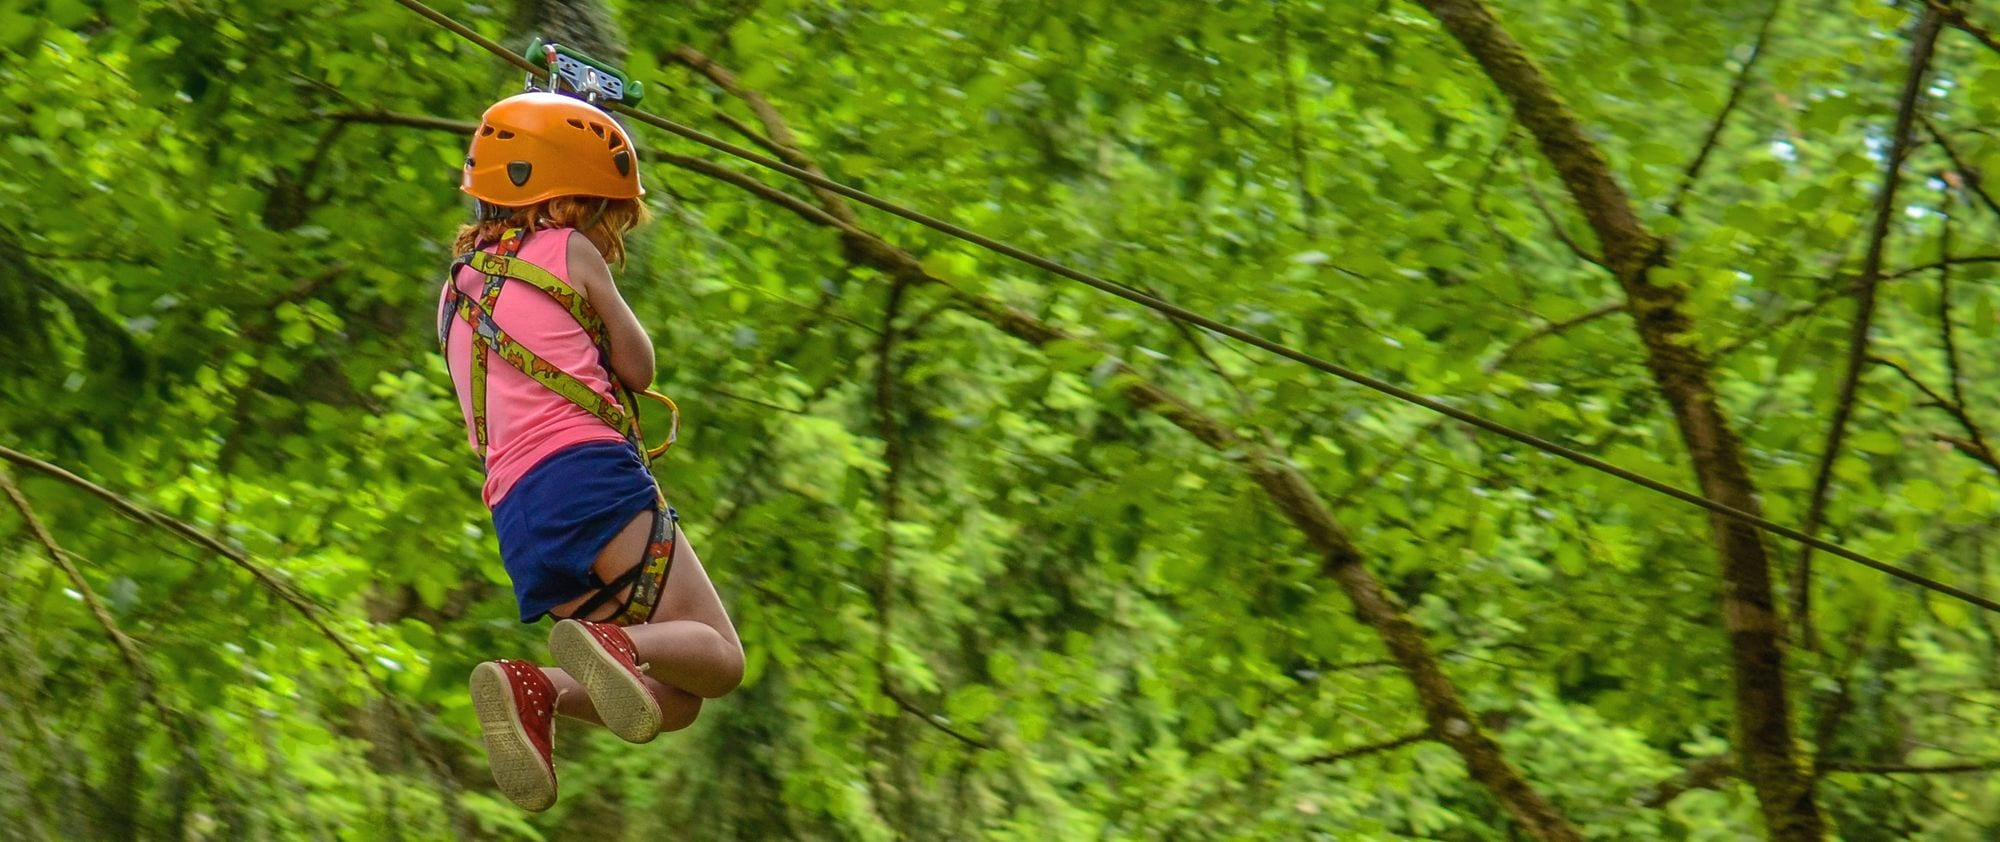 Young Girl On A Zip Line In A Forest Adventure Park